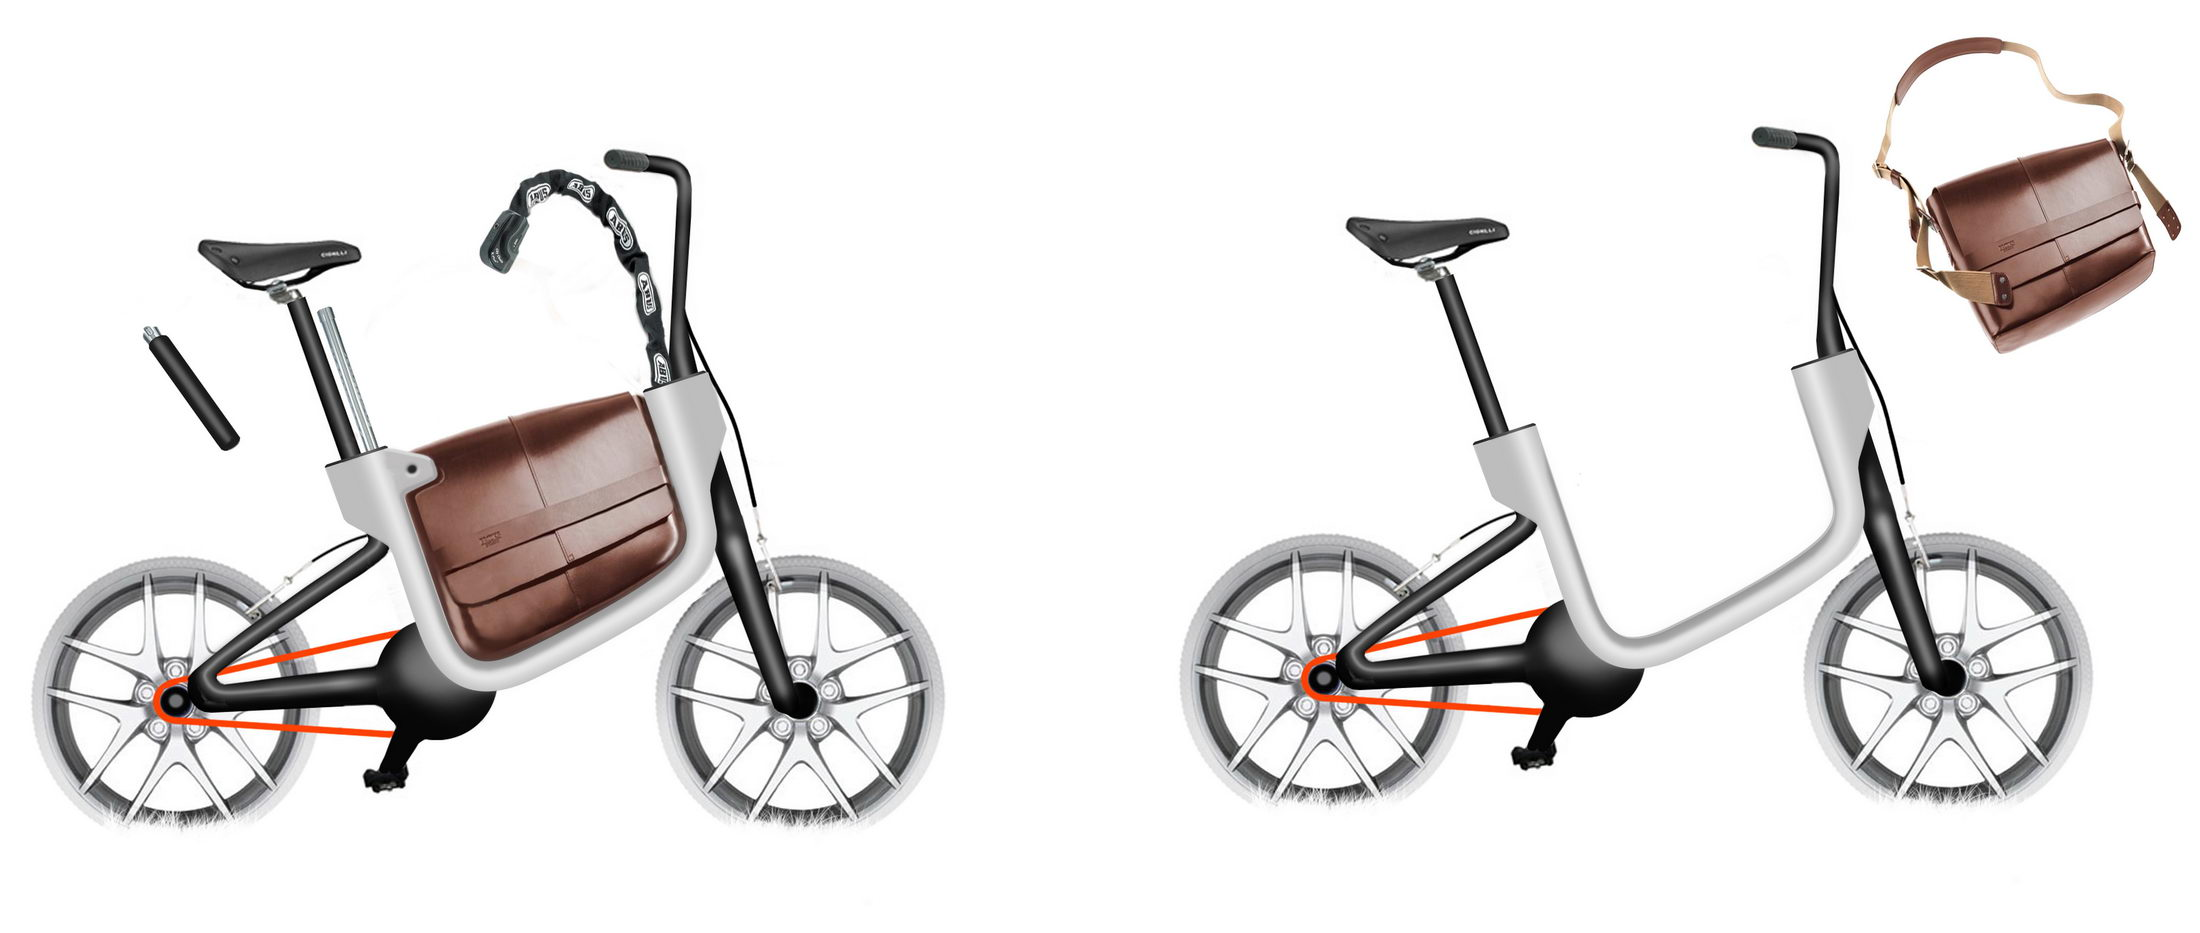 Transportation - Sketches - Peugeot Cycles AE21